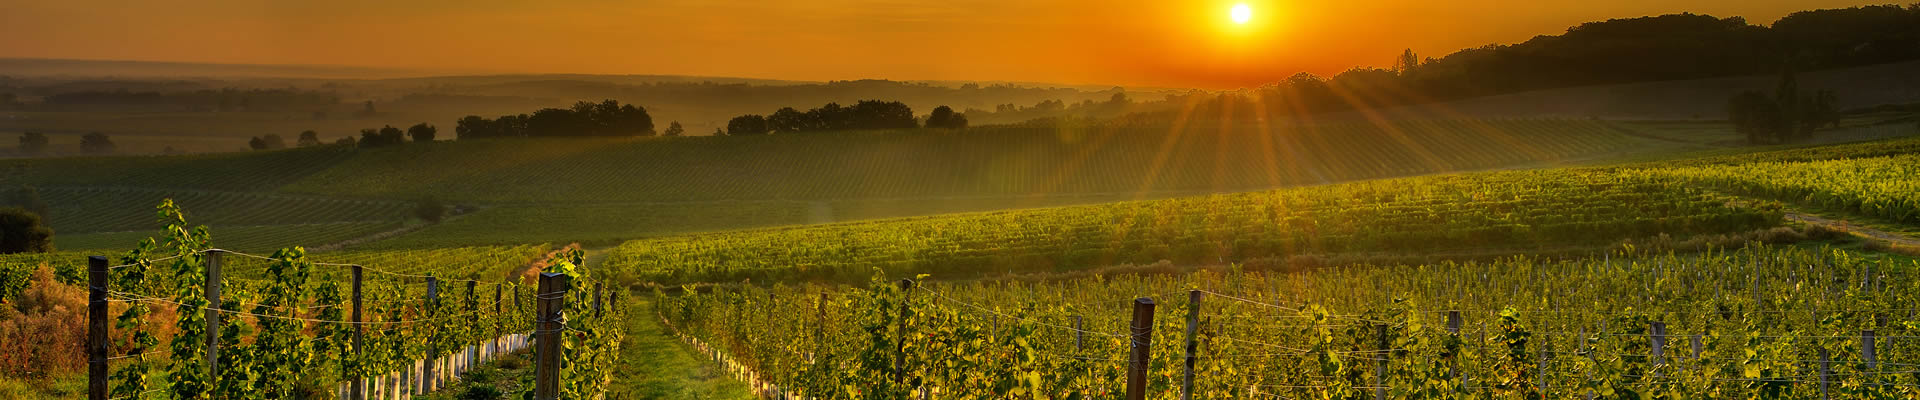 Sunset over vineyard in South of France